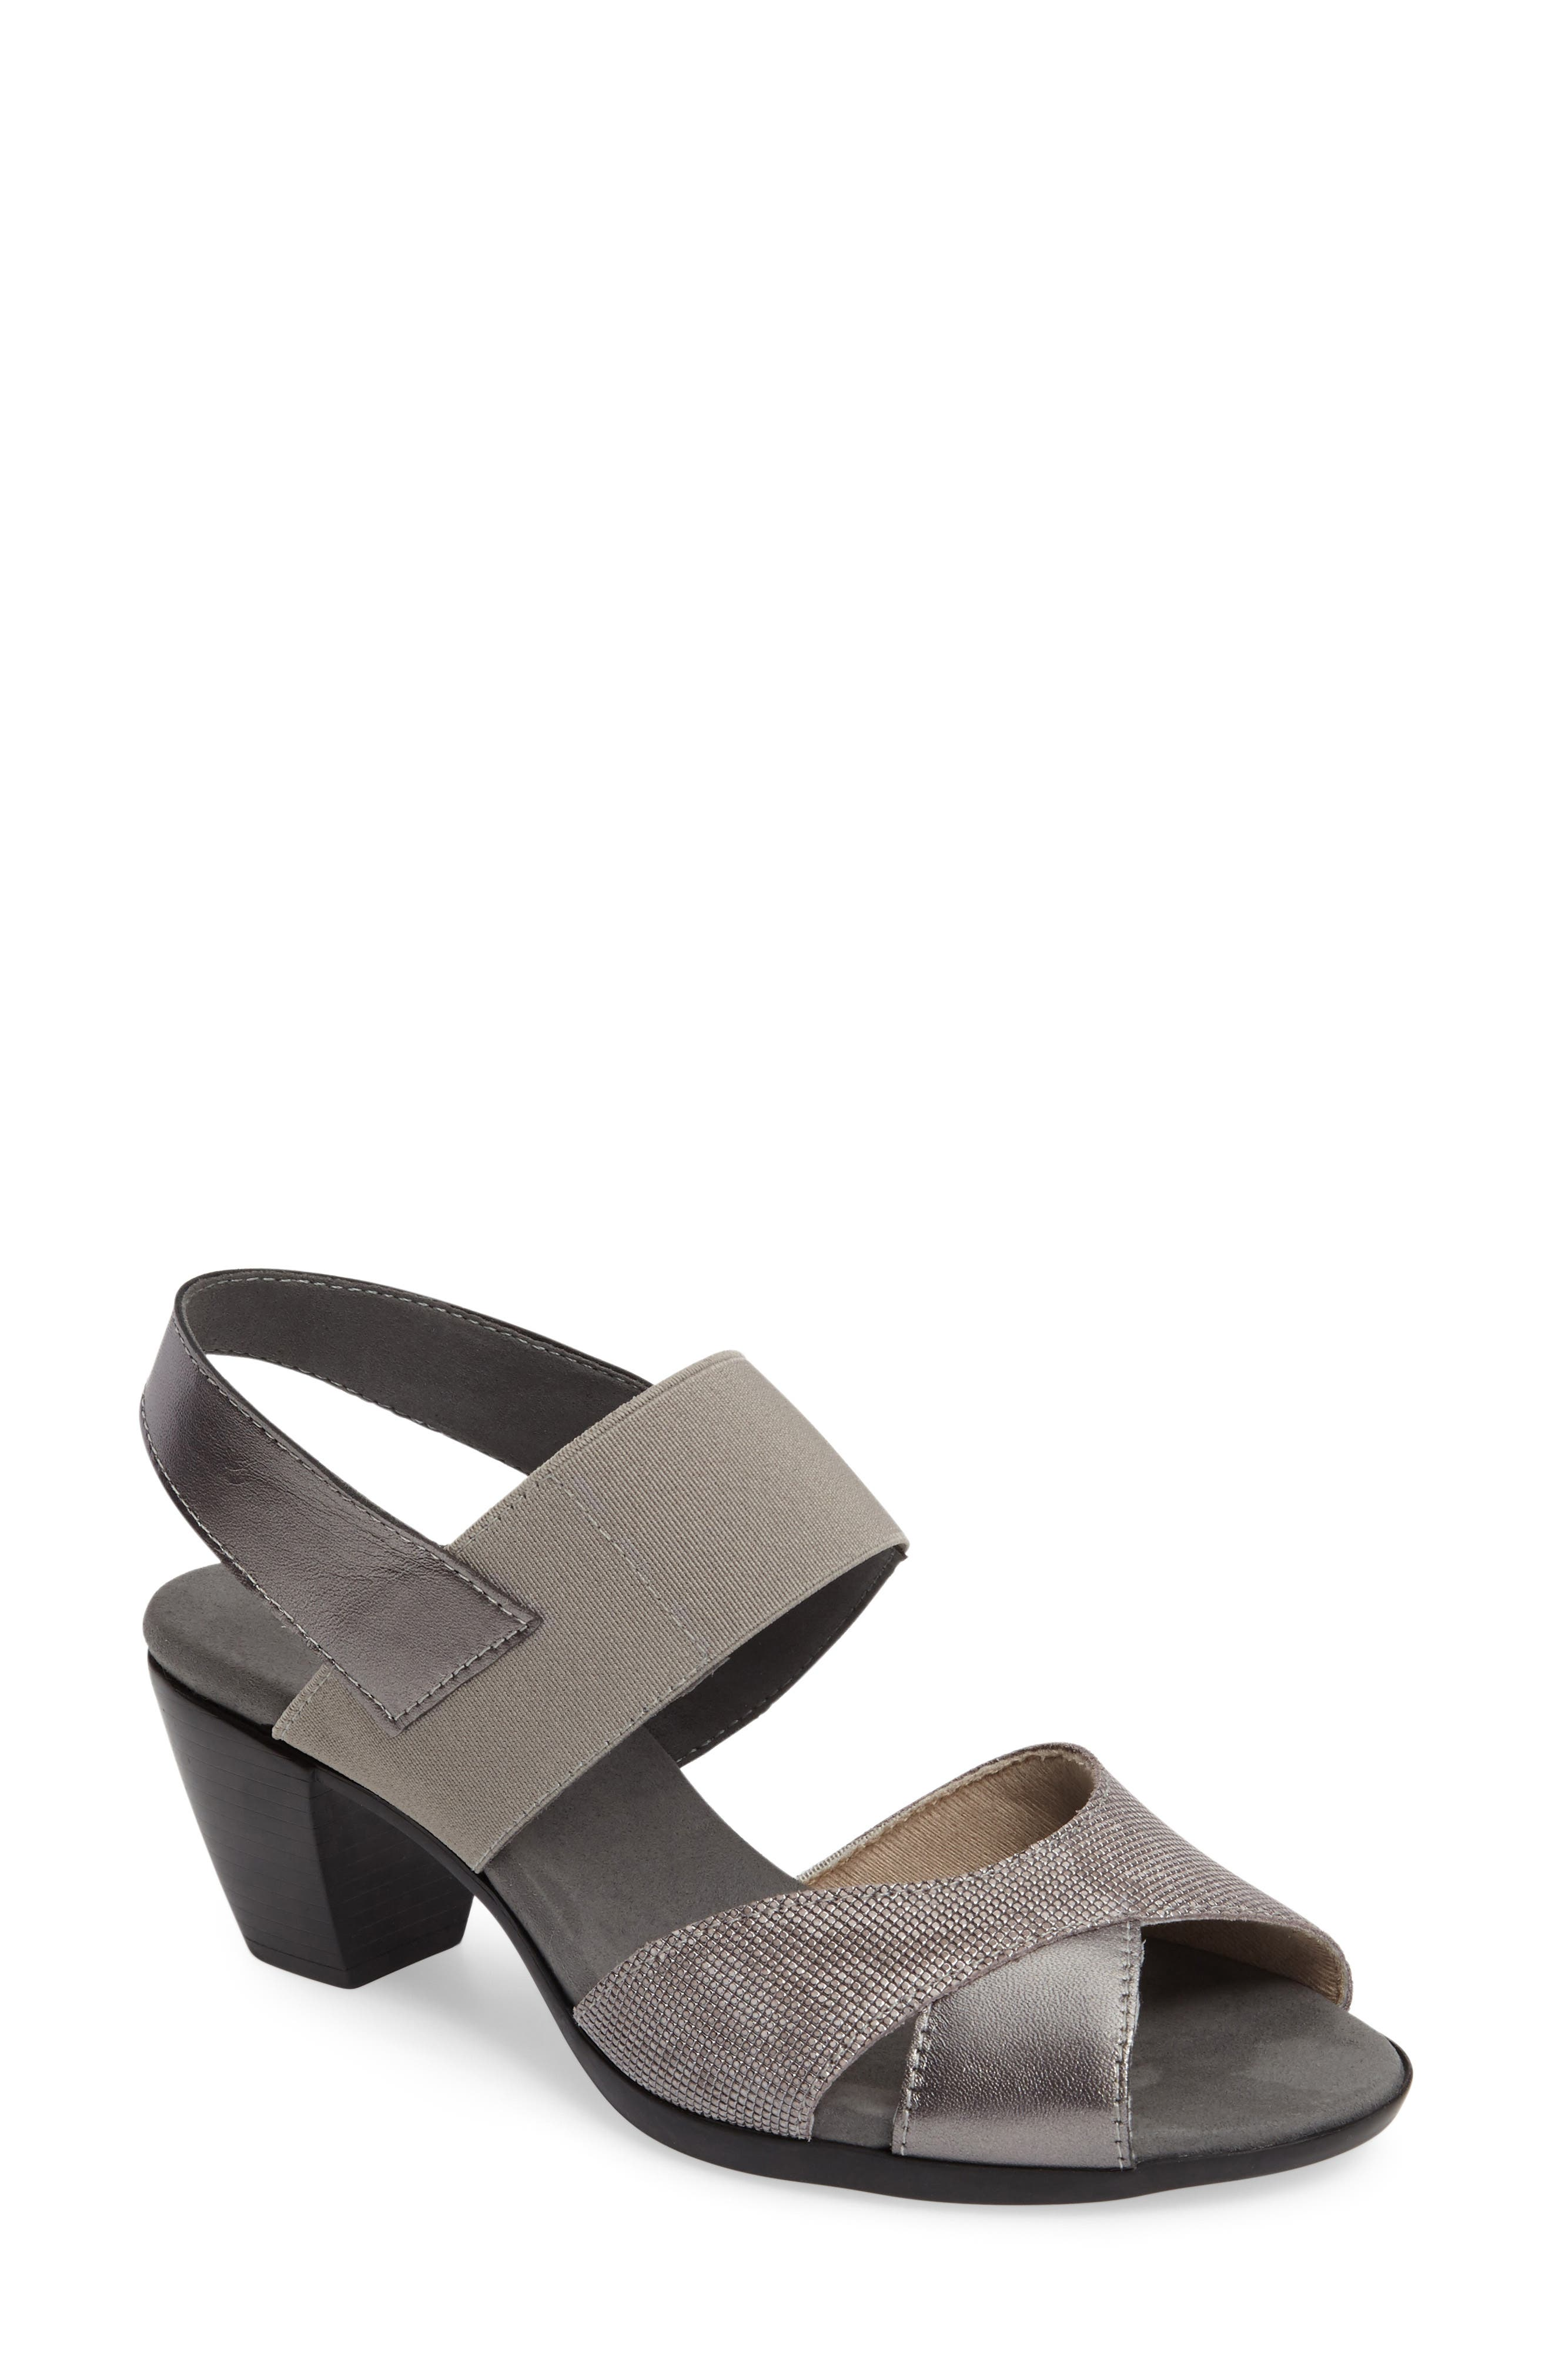 Darling Mixed Finish Slingback Sandal,                         Main,                         color, Pewter Leather